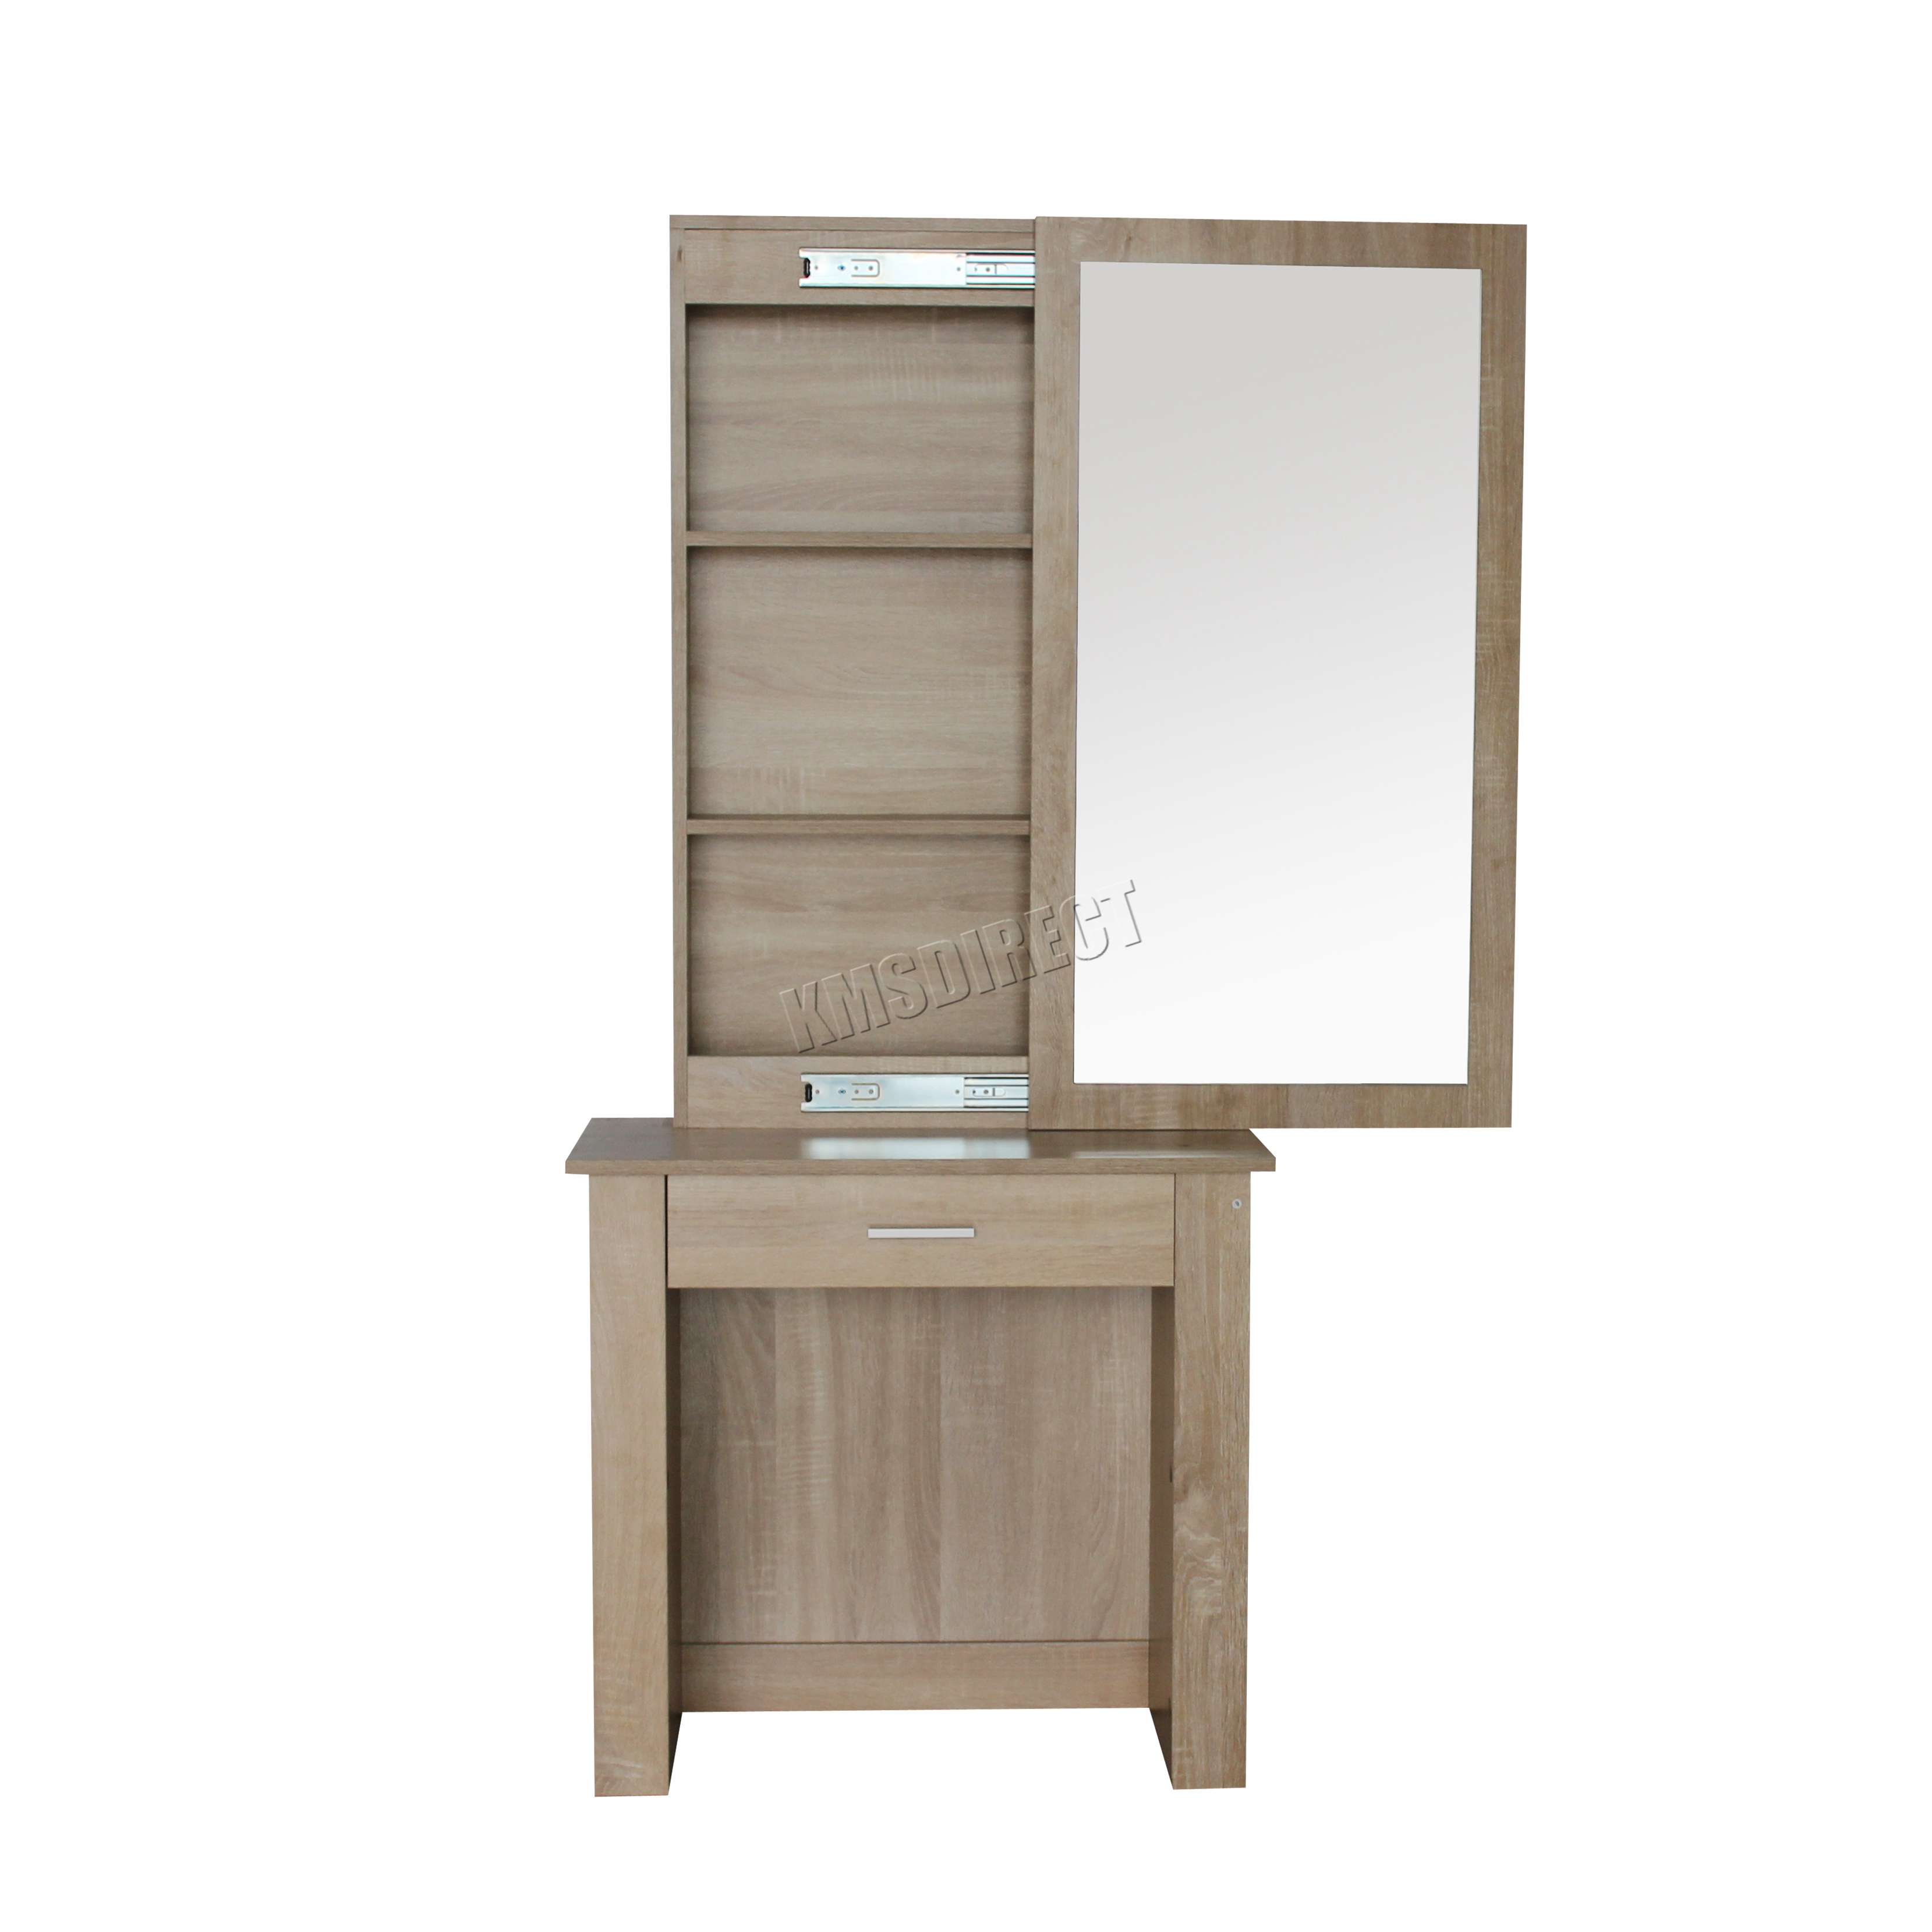 Sentinel FoxHunter Wooden Makeup Jewelry Dressing Table With Sliding Mirror  DT04 Walnut. FoxHunter Wooden Makeup Jewelry Dressing Table With Sliding Mirror